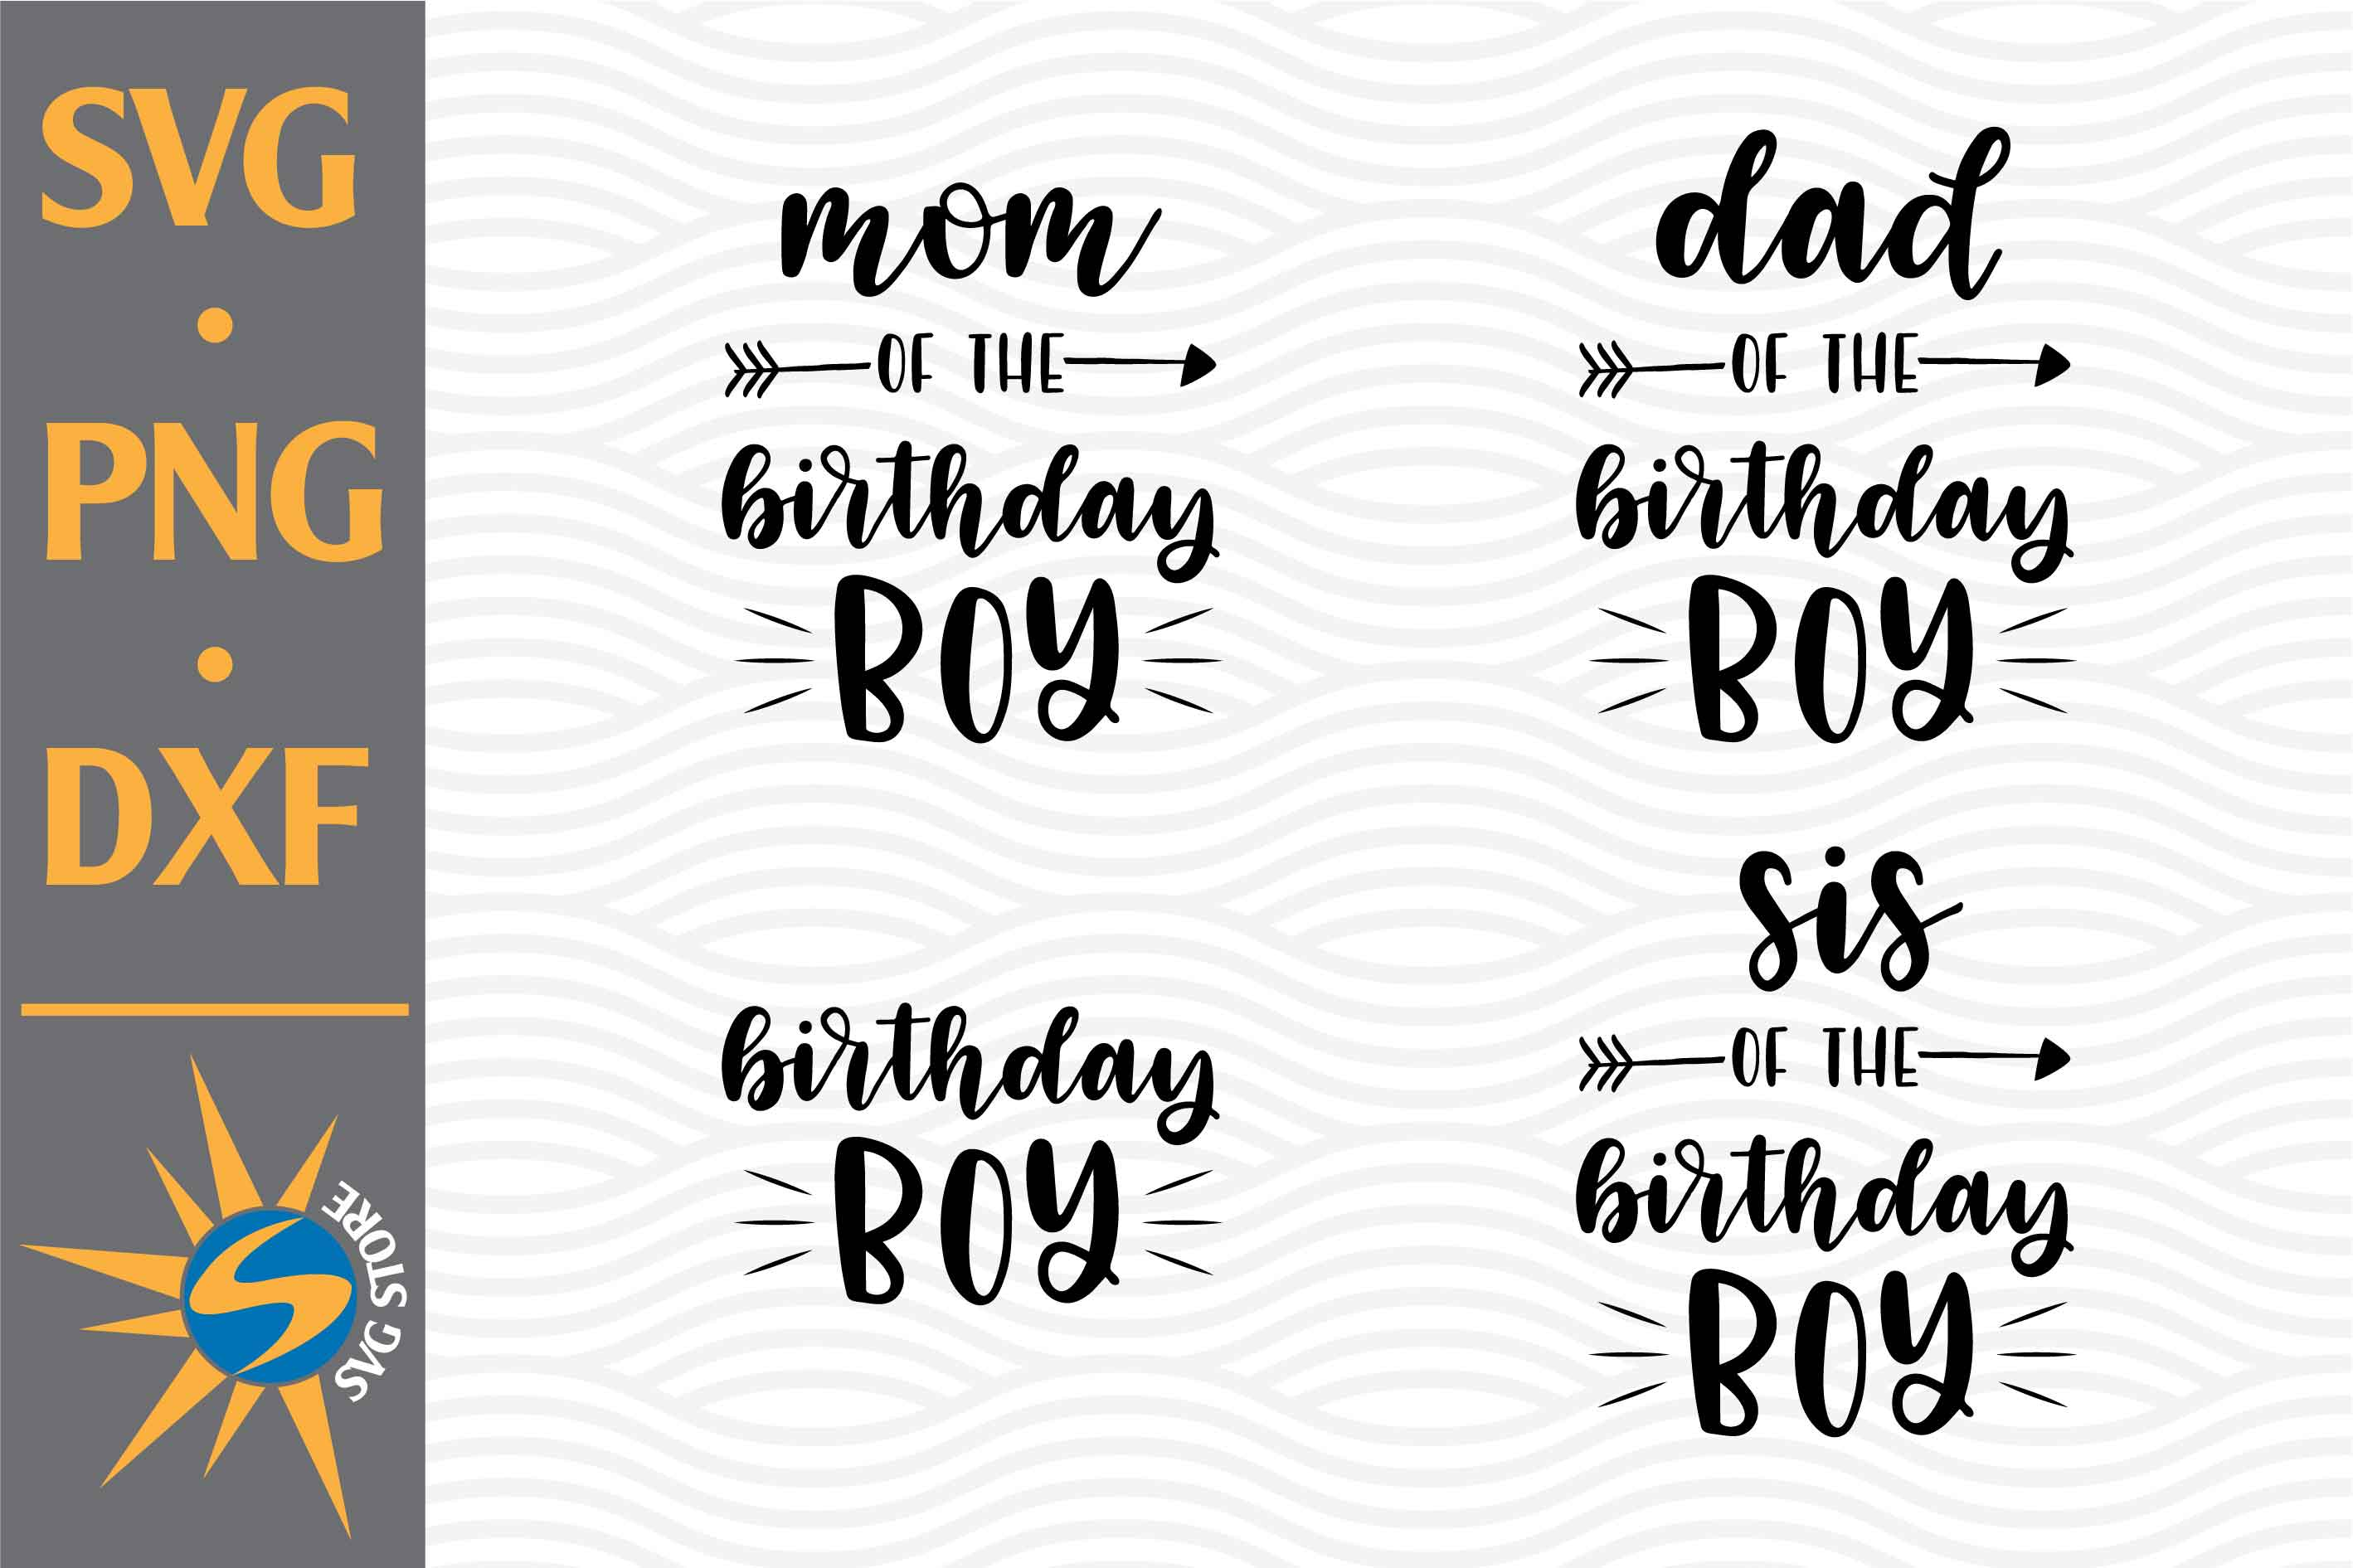 Download Free October Birthday Svg Free Svg Cut Files Create Your Diy Projects Using Your Cricut Explore Silhouette And More The Free Cut Files Include Svg Dxf Eps And Png Files SVG Cut Files